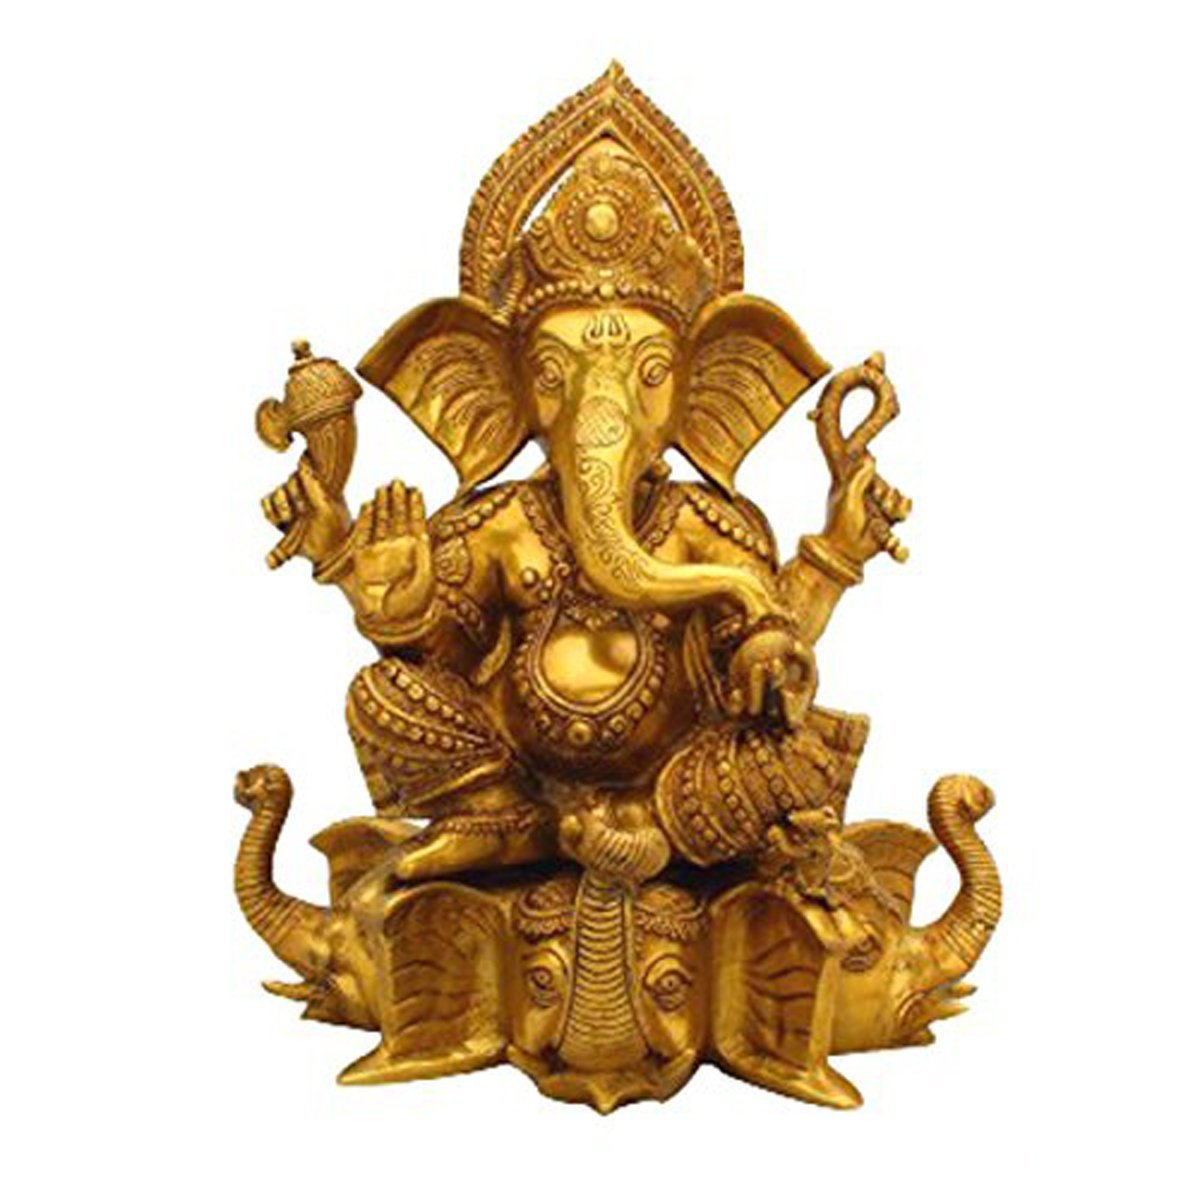 Idol Collections Ganesha Sitting On Elephant Trunk Brass Statue, Standard, Golden Yellow